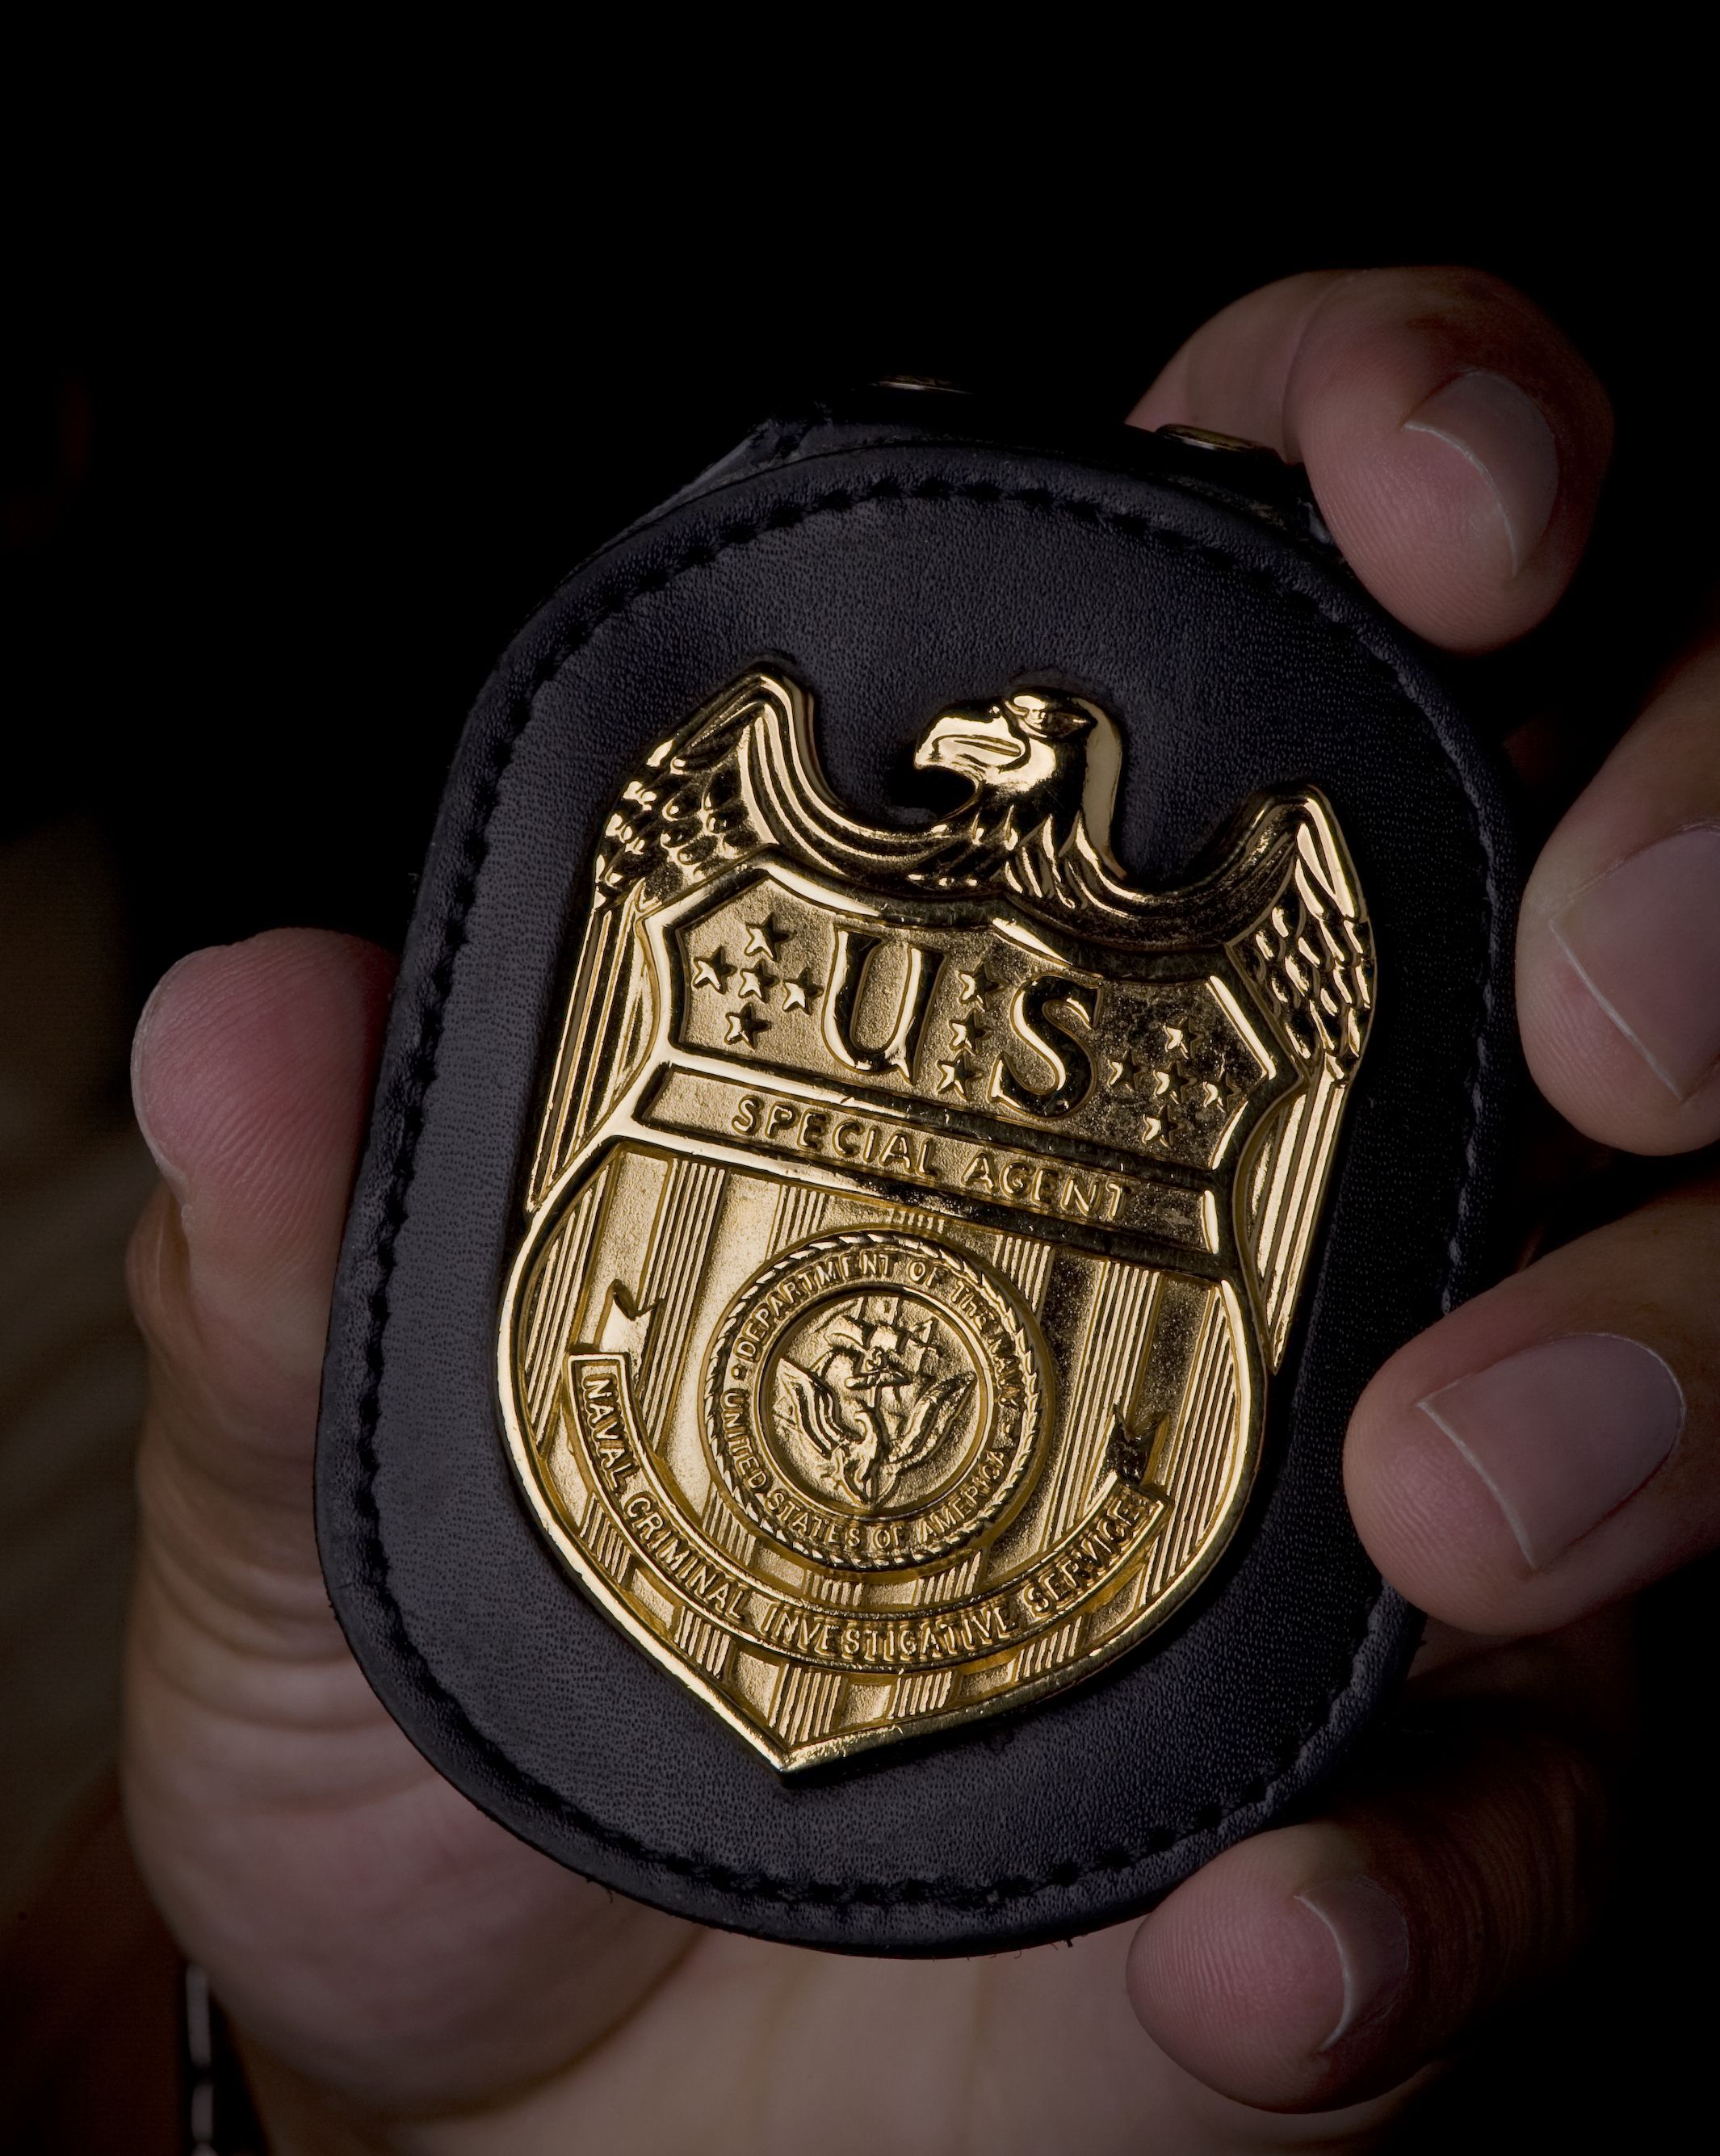 ncis retired badge badges pinterest ncis badges and law